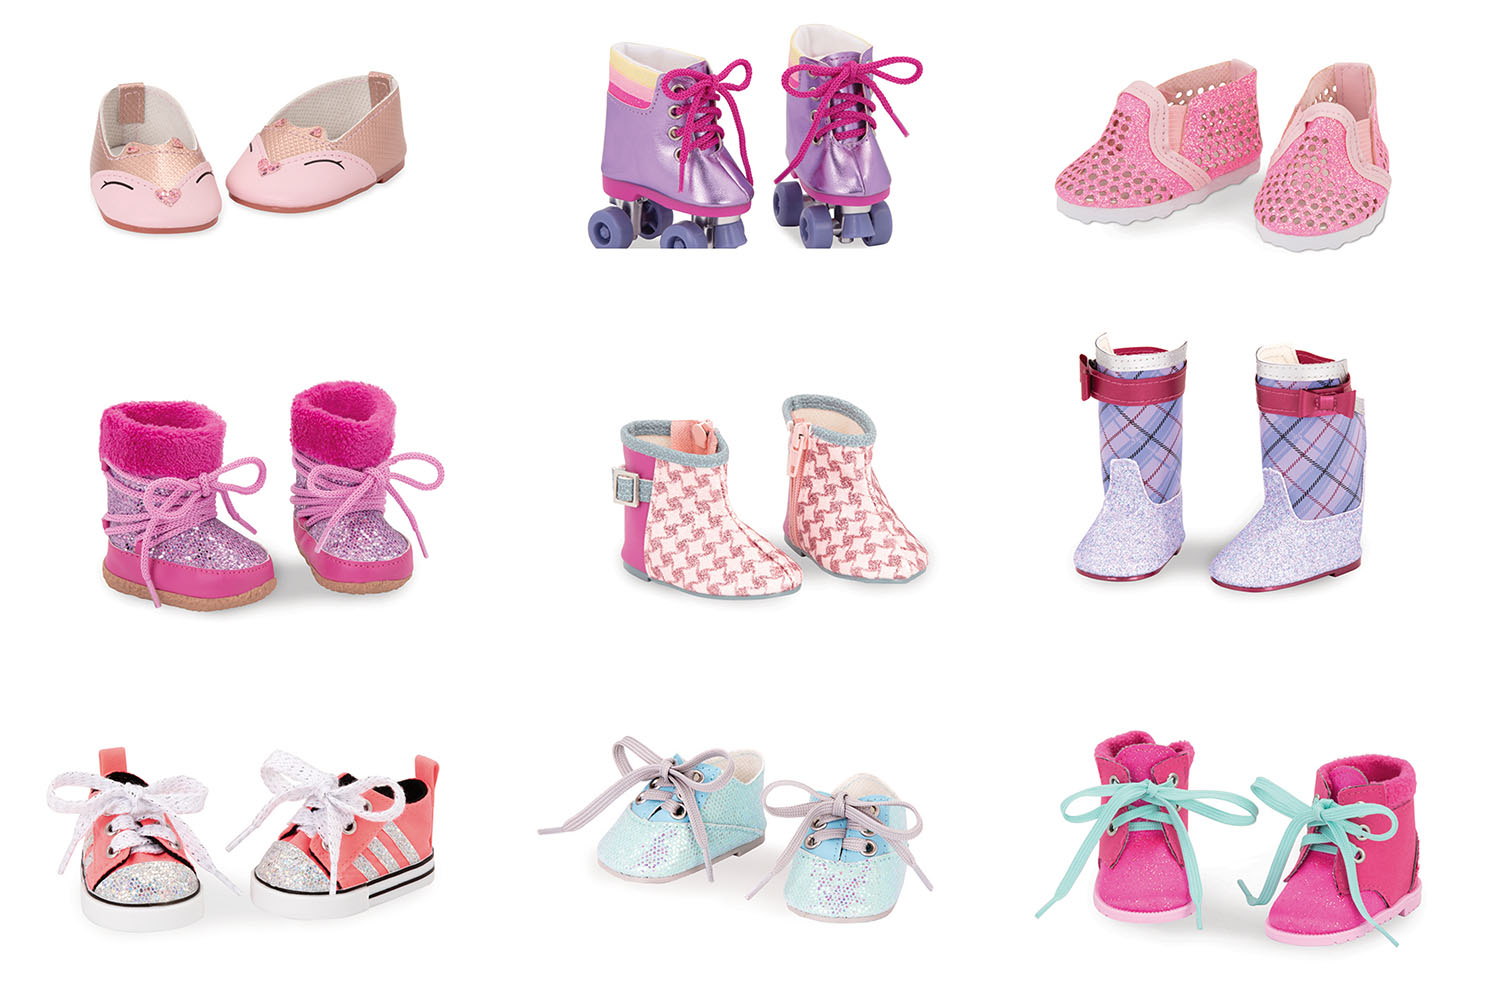 Chaussures pour OG assortis